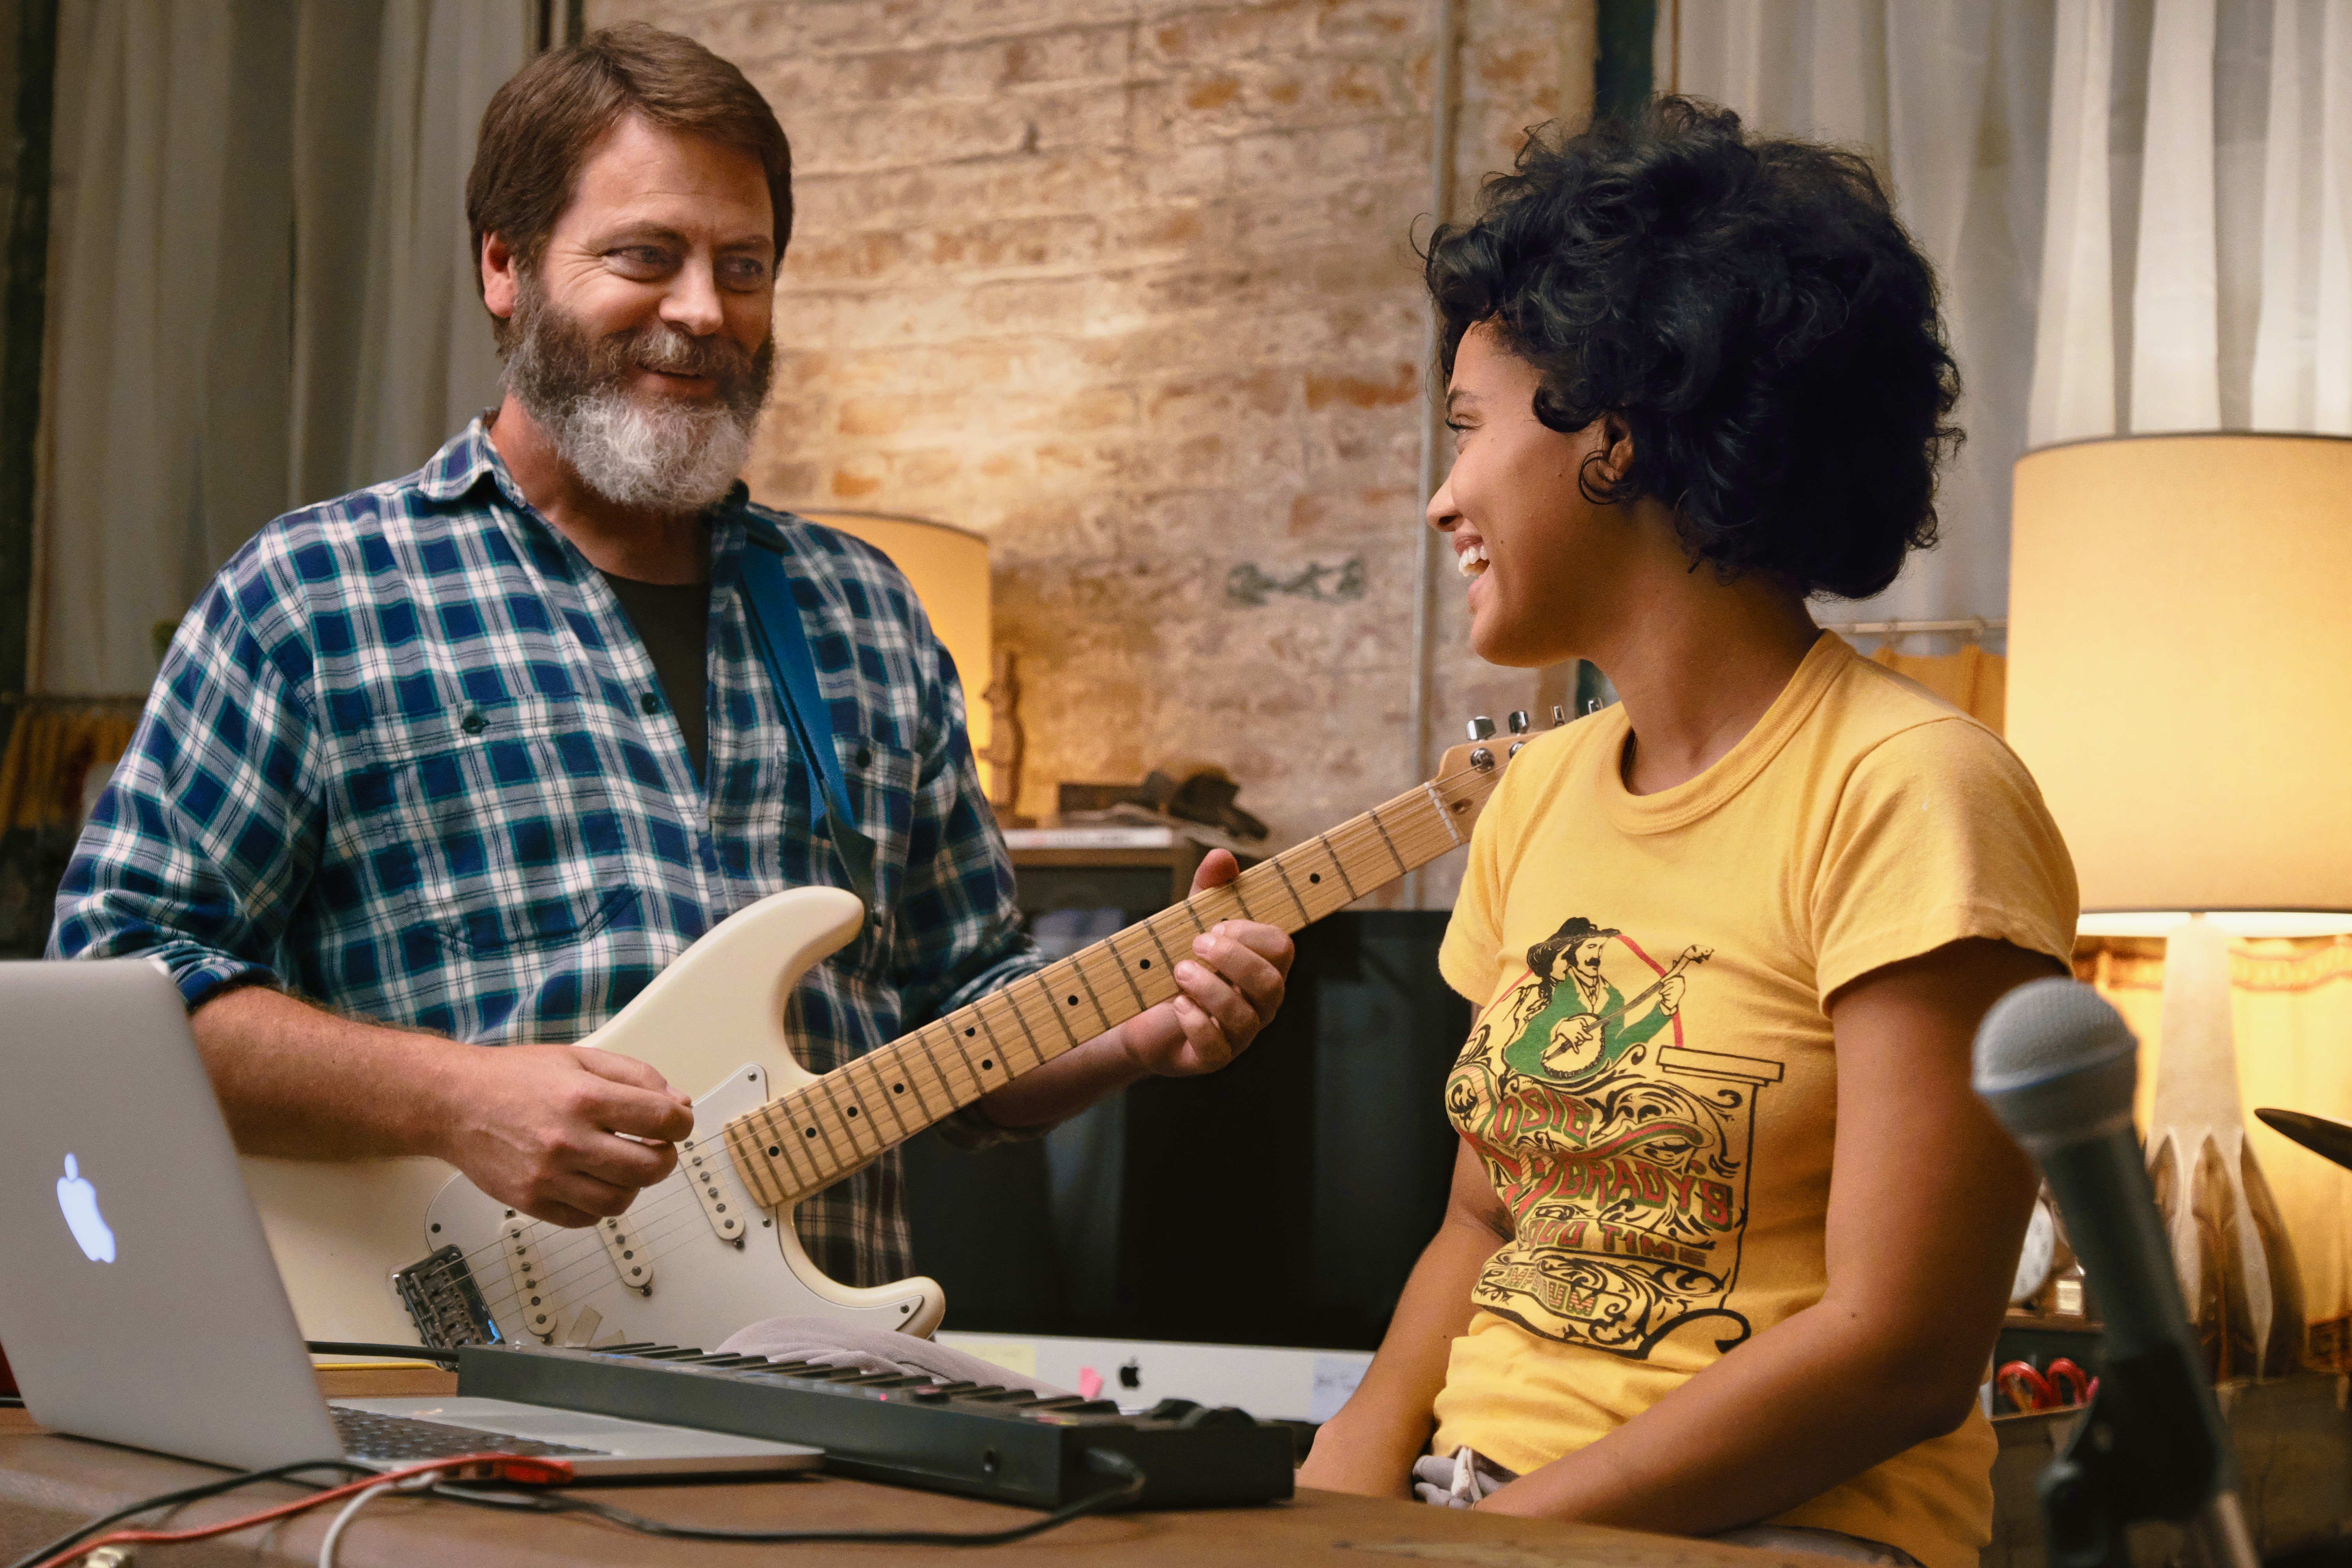 Nick Offerman and Kiersey Clemons star in Hearts Beat Loud